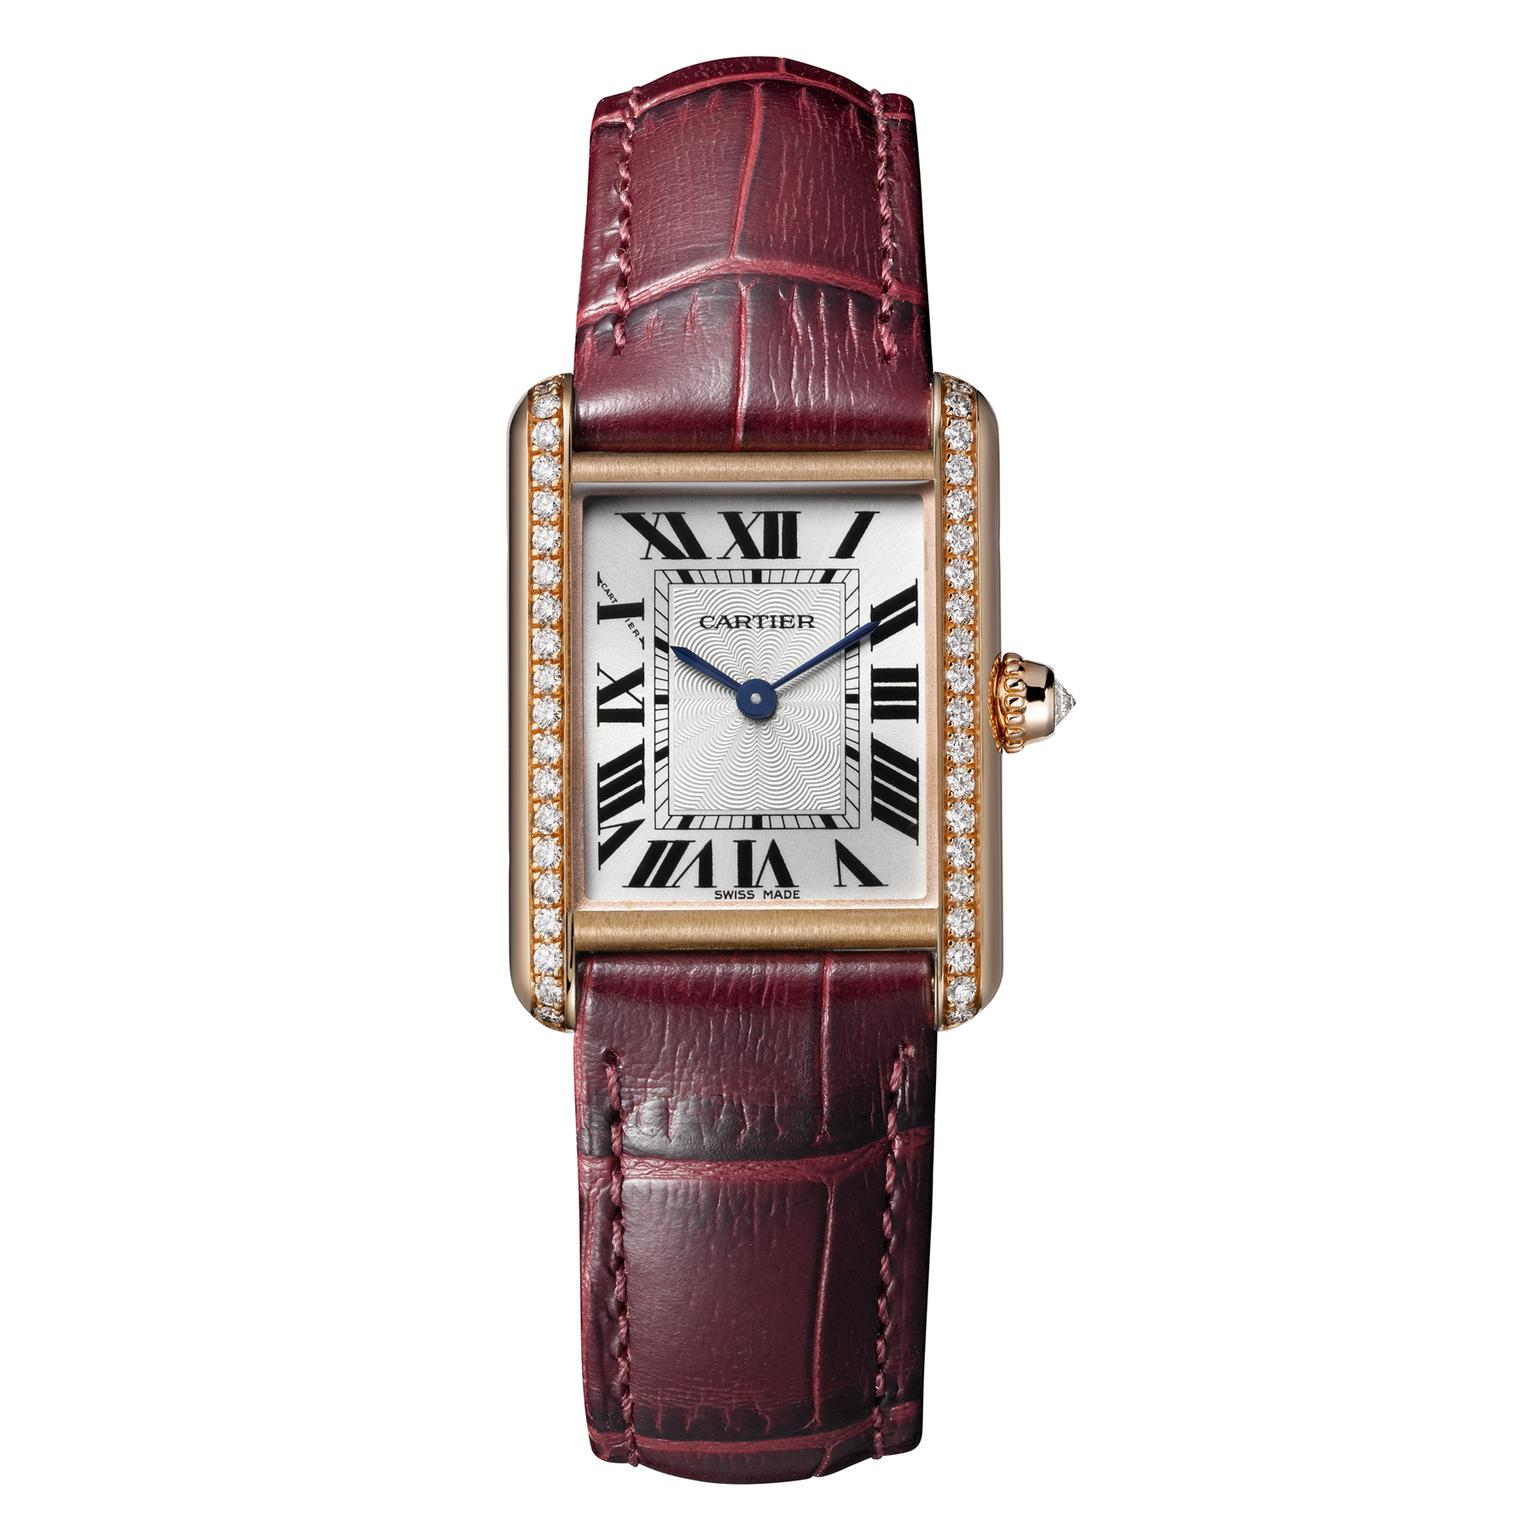 Cartier Tank Louis Cartier small pink gold watch with diamonds